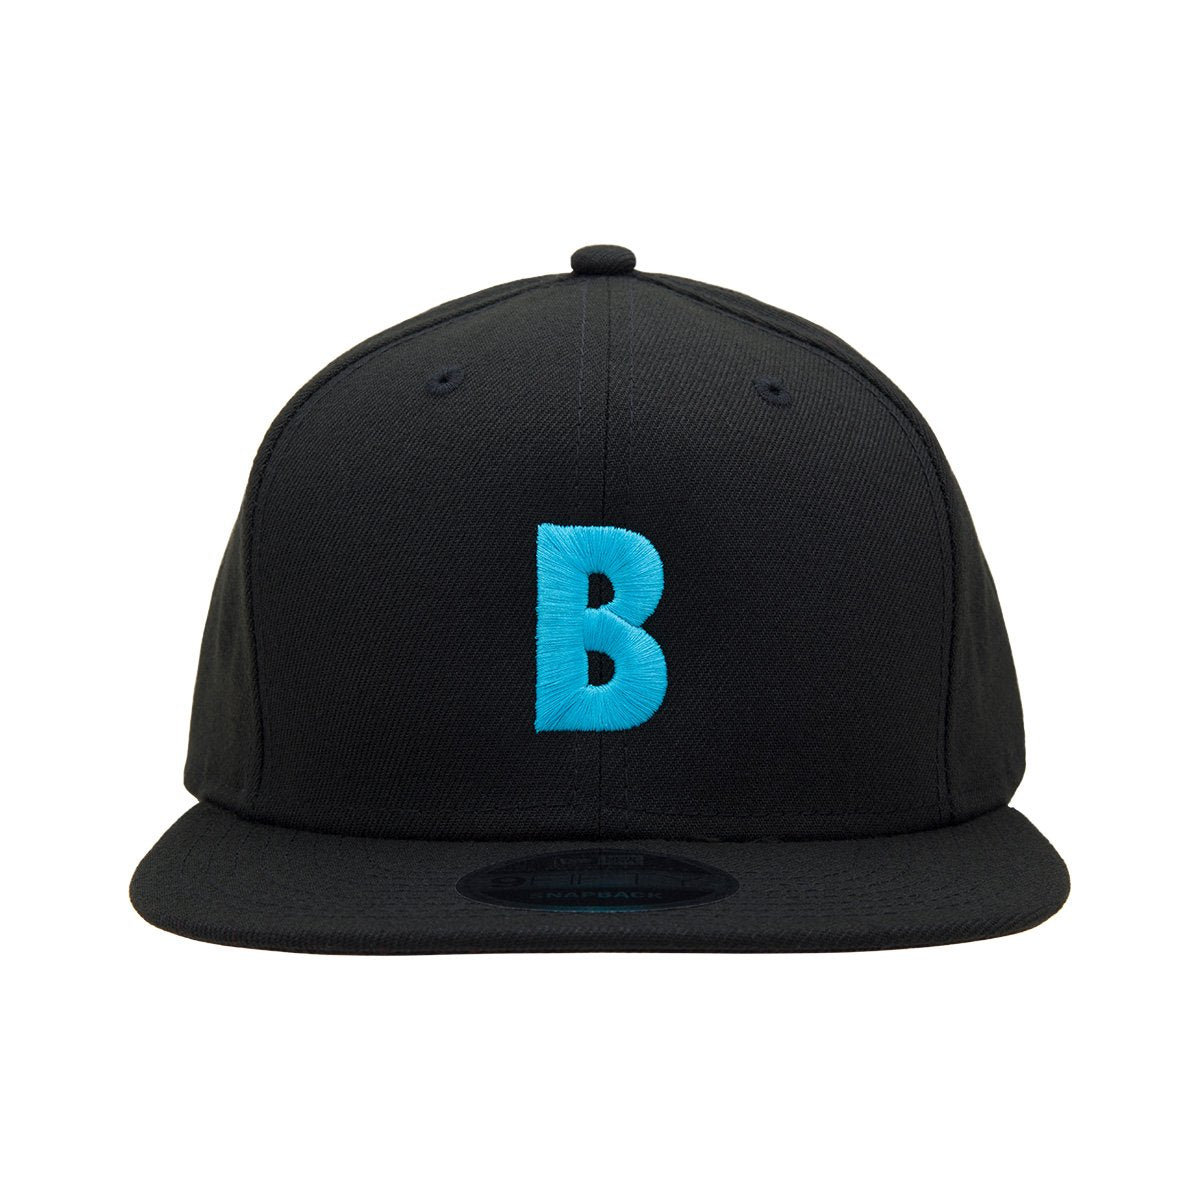 The Broad Snapback